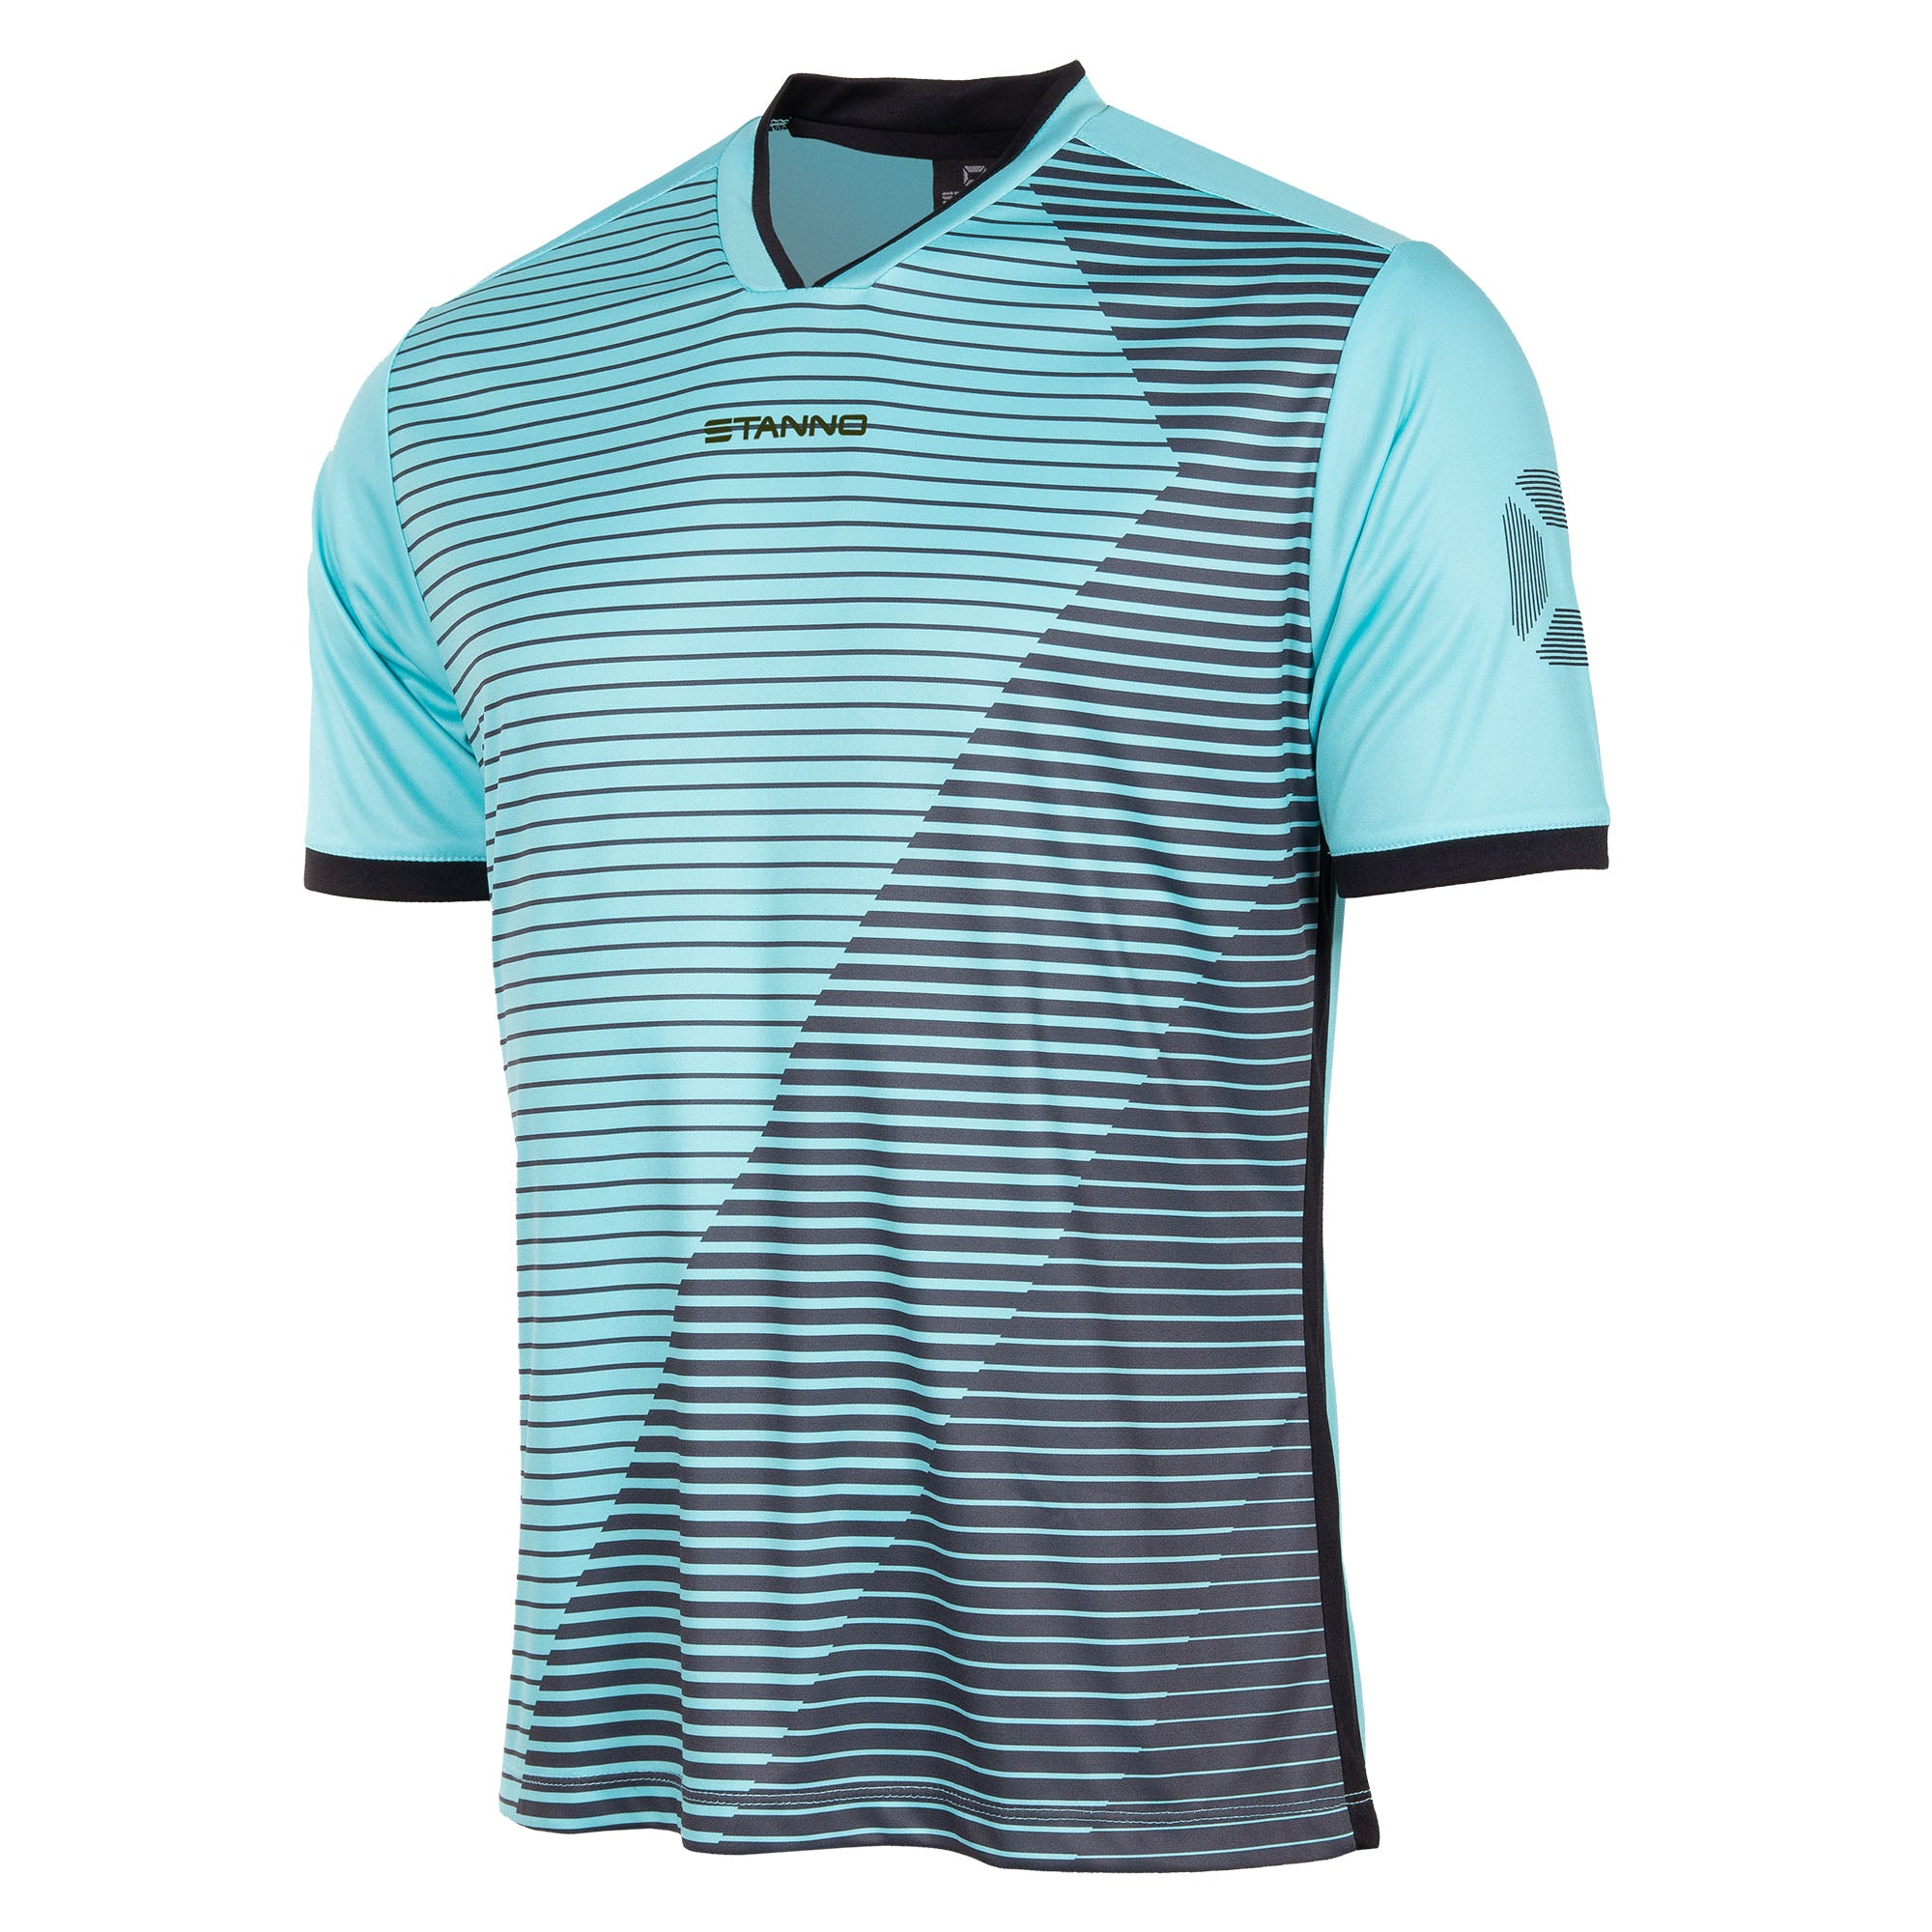 Stanno Rush Limited edition short sleeved jersey in aqua blue with black Striped graphic across the chest. Stadium logo on the sleeve. V-neck collar. Black contrast cuff.